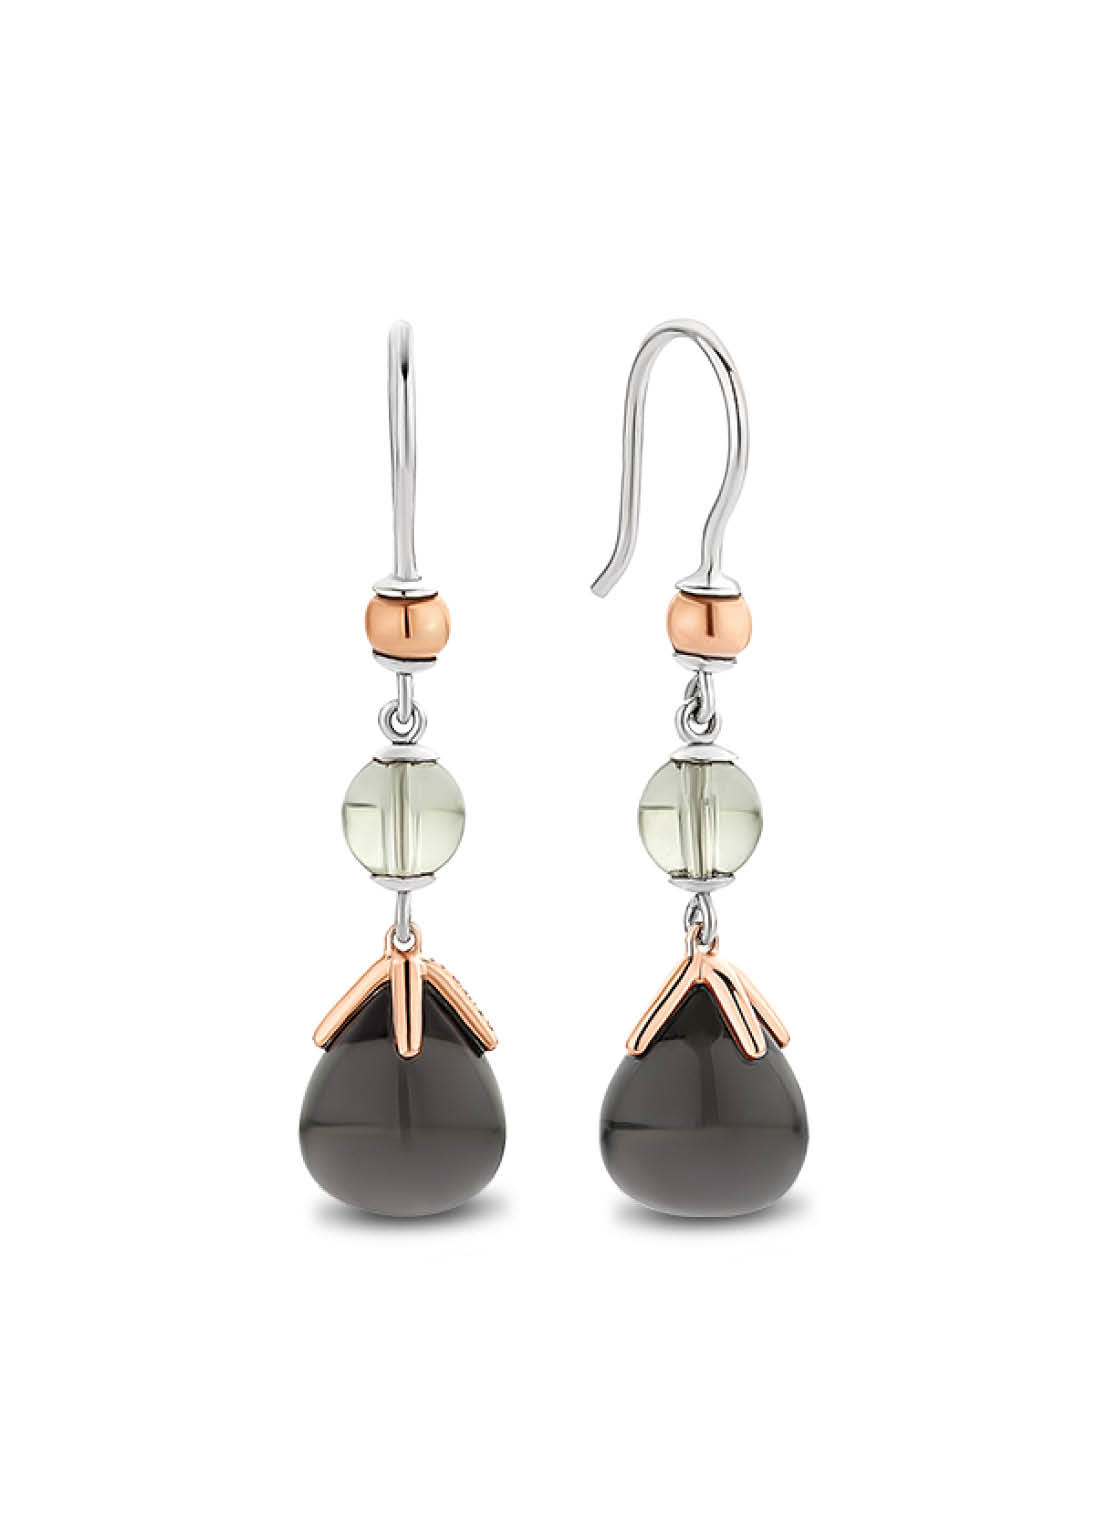 TI SENTO - Milano Earrings 7810GB-3